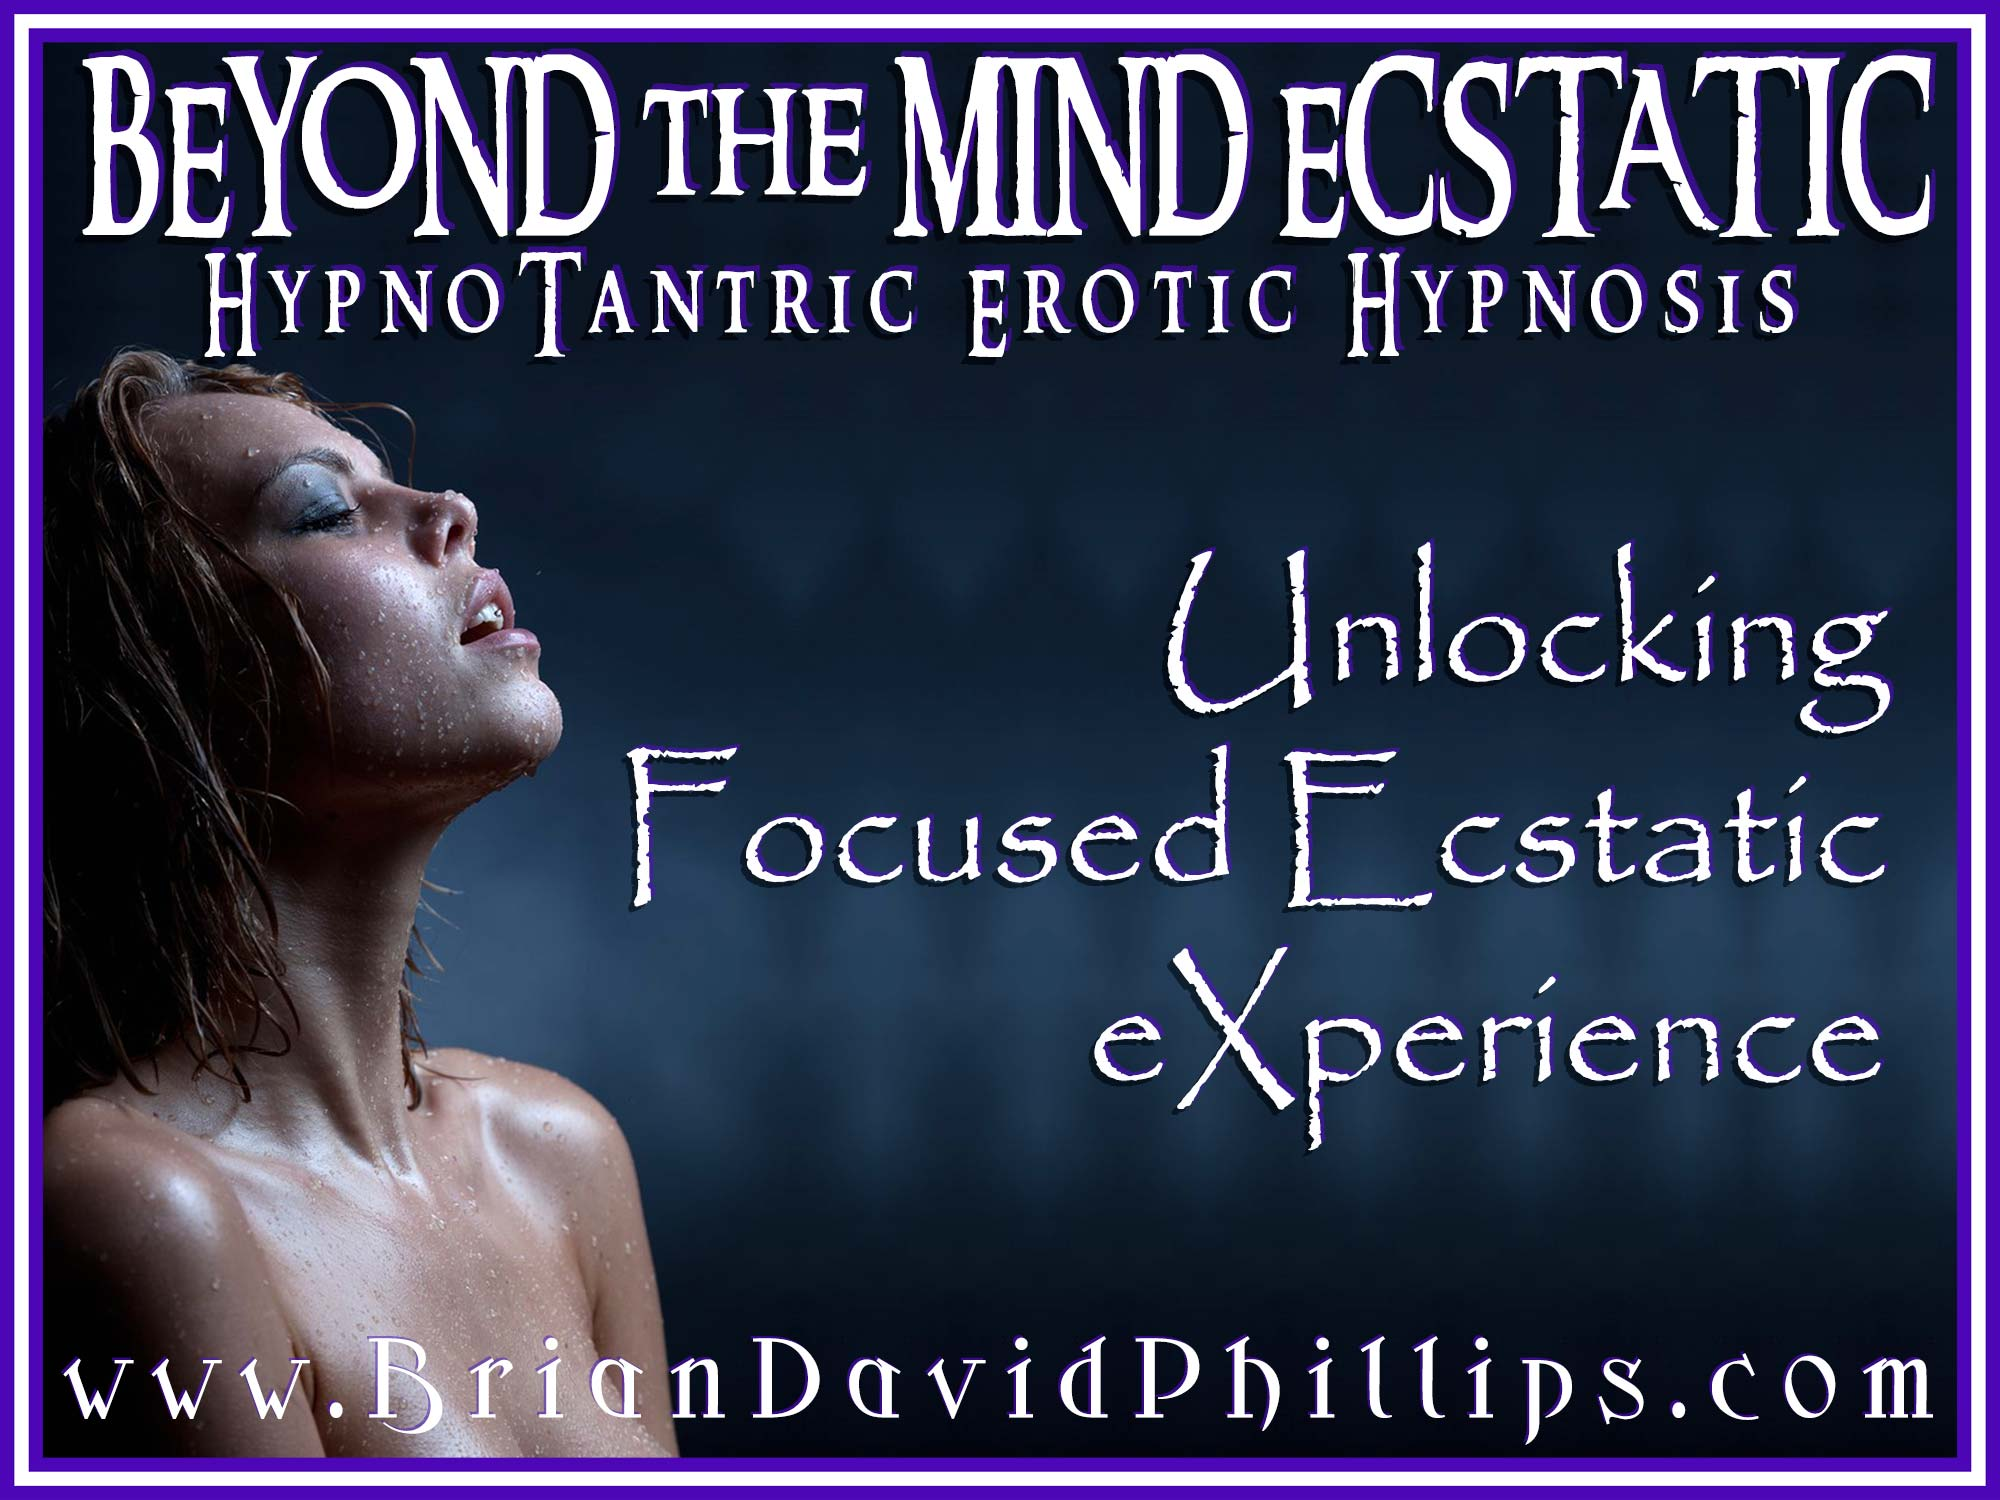 Beyond the Mind Ecstatic HypnoTantric Erotic Hypnosis